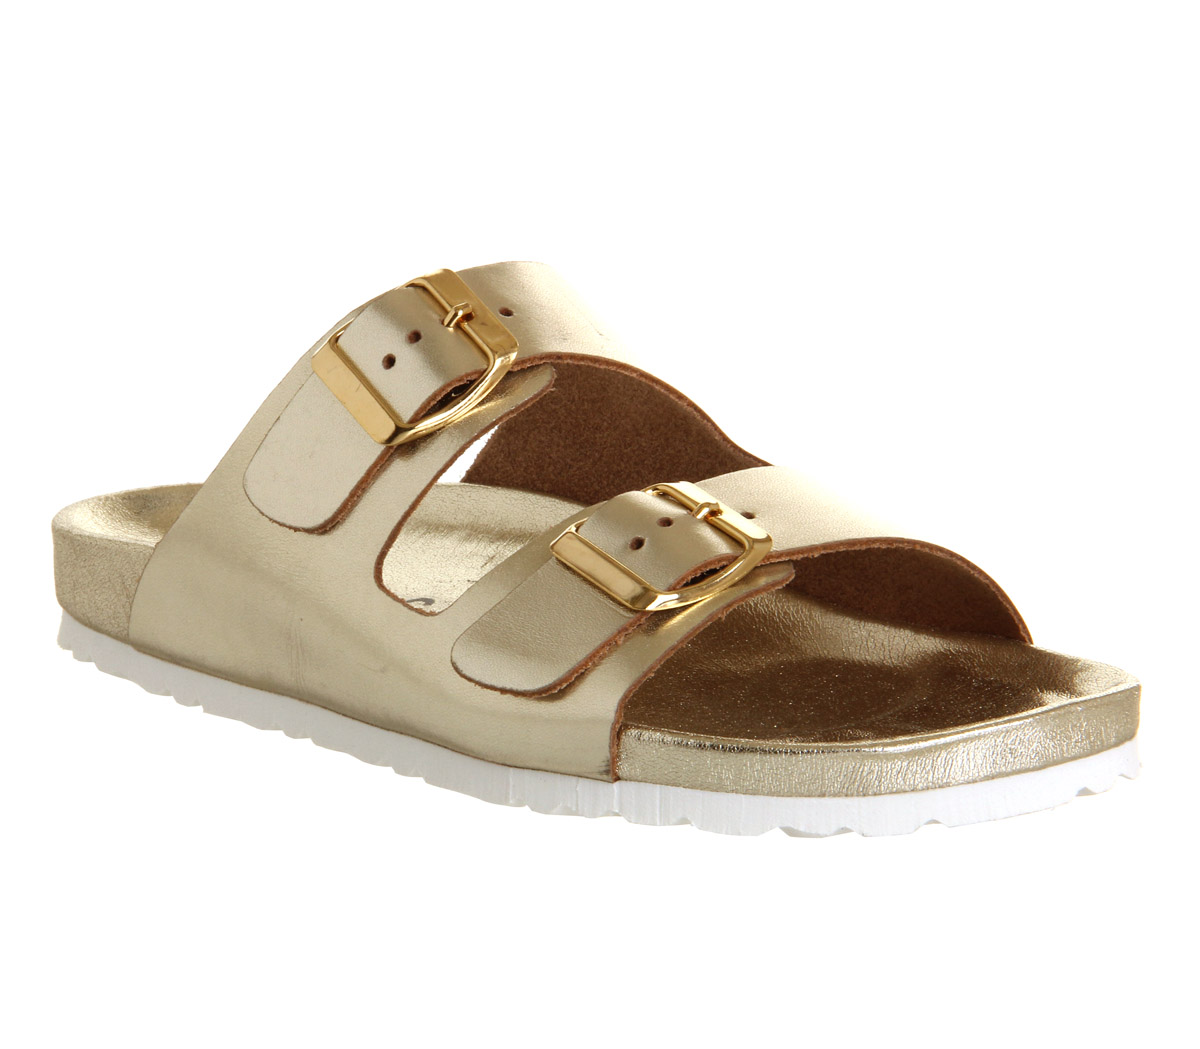 Strap Double Gold Mono Office Hype Sandals 8wOPn0NkX